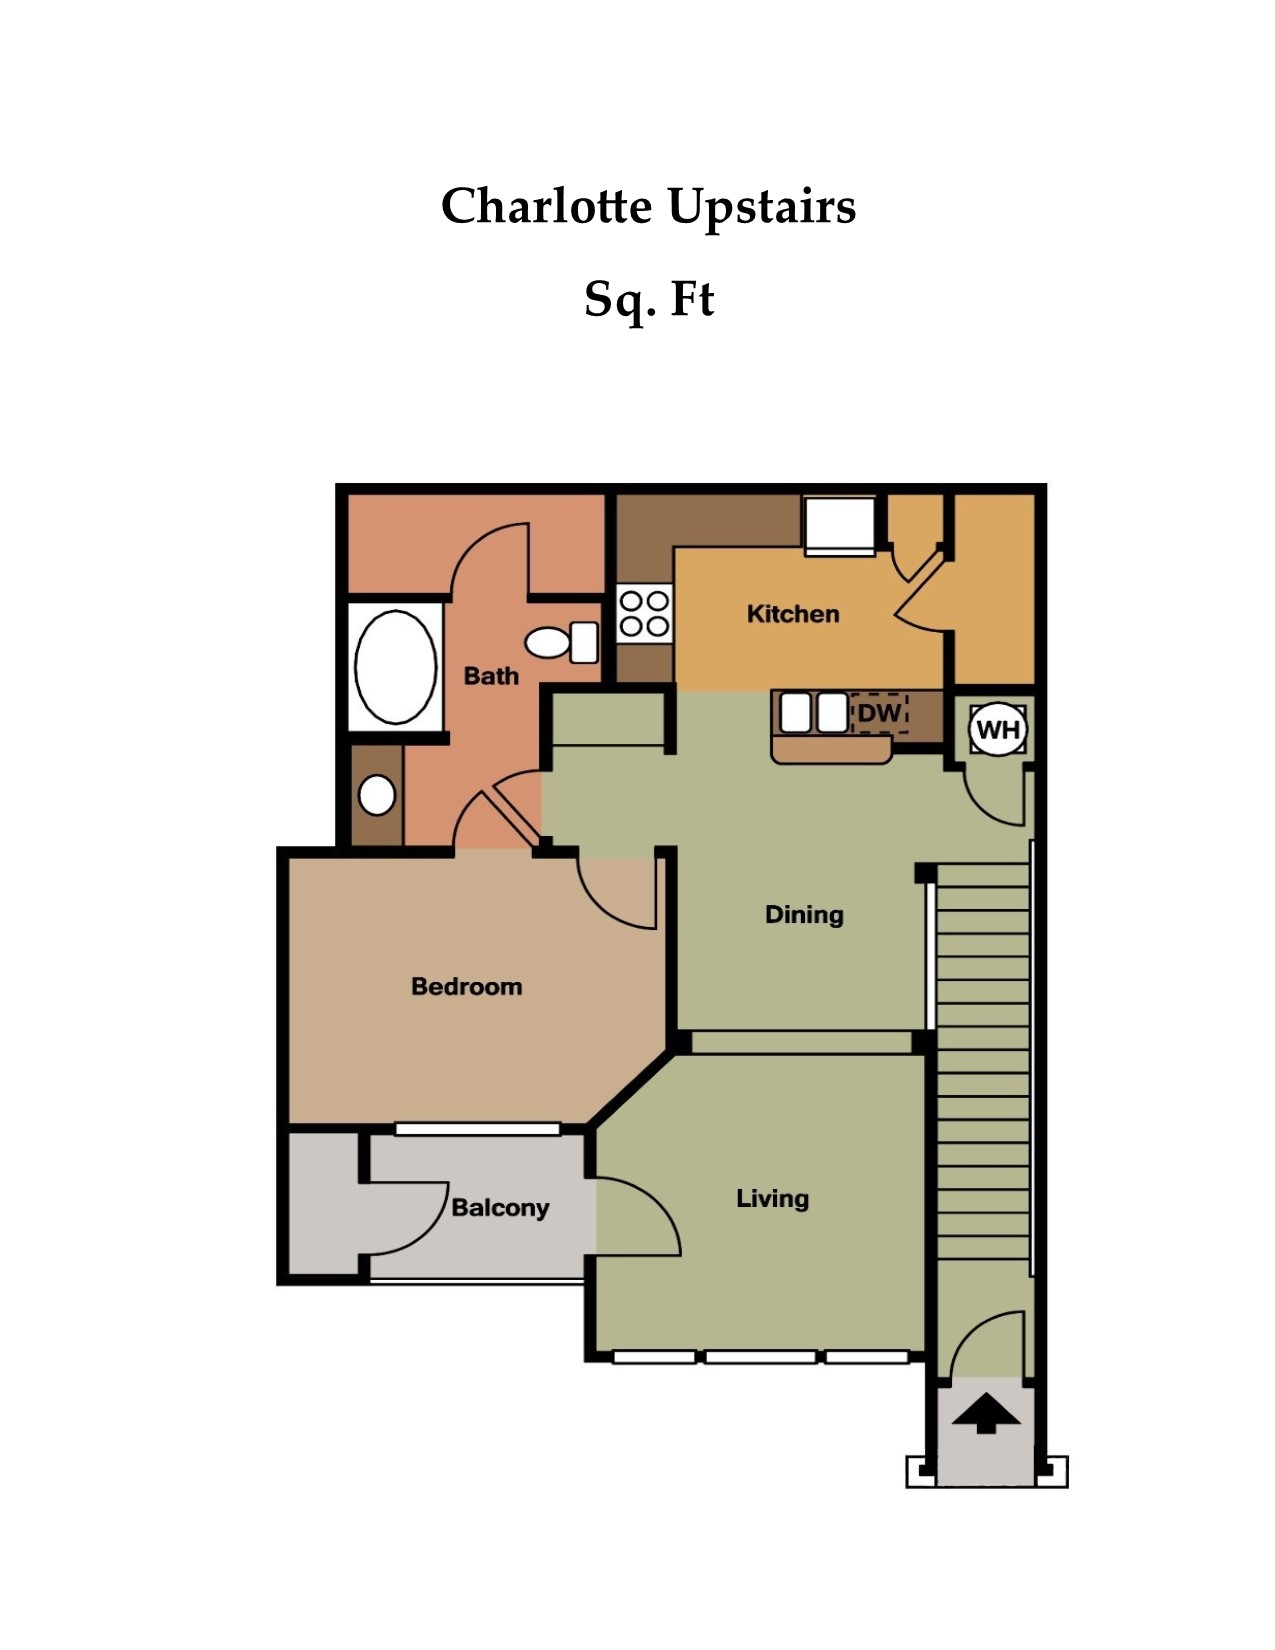 Floorplan - The Charlotte Upper image